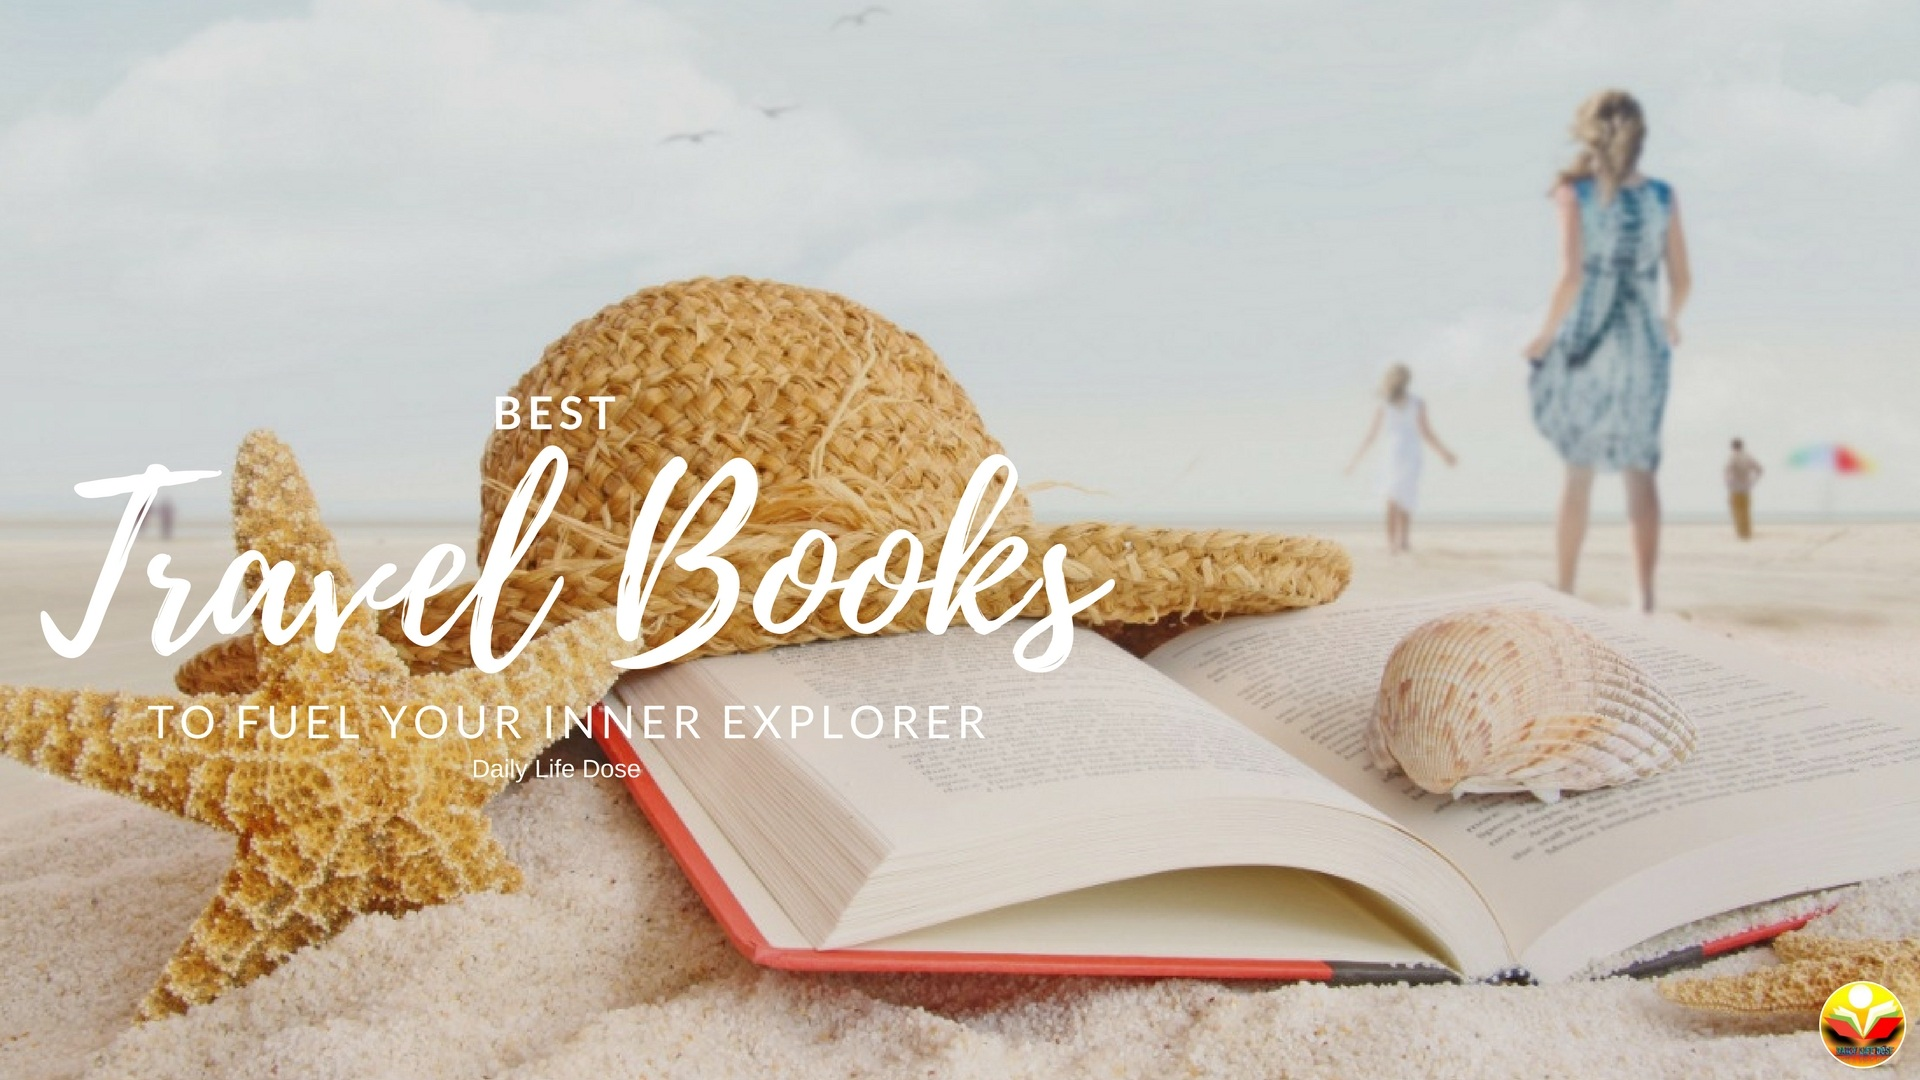 The Best Travel Books to Fuel Your Inner Explorer